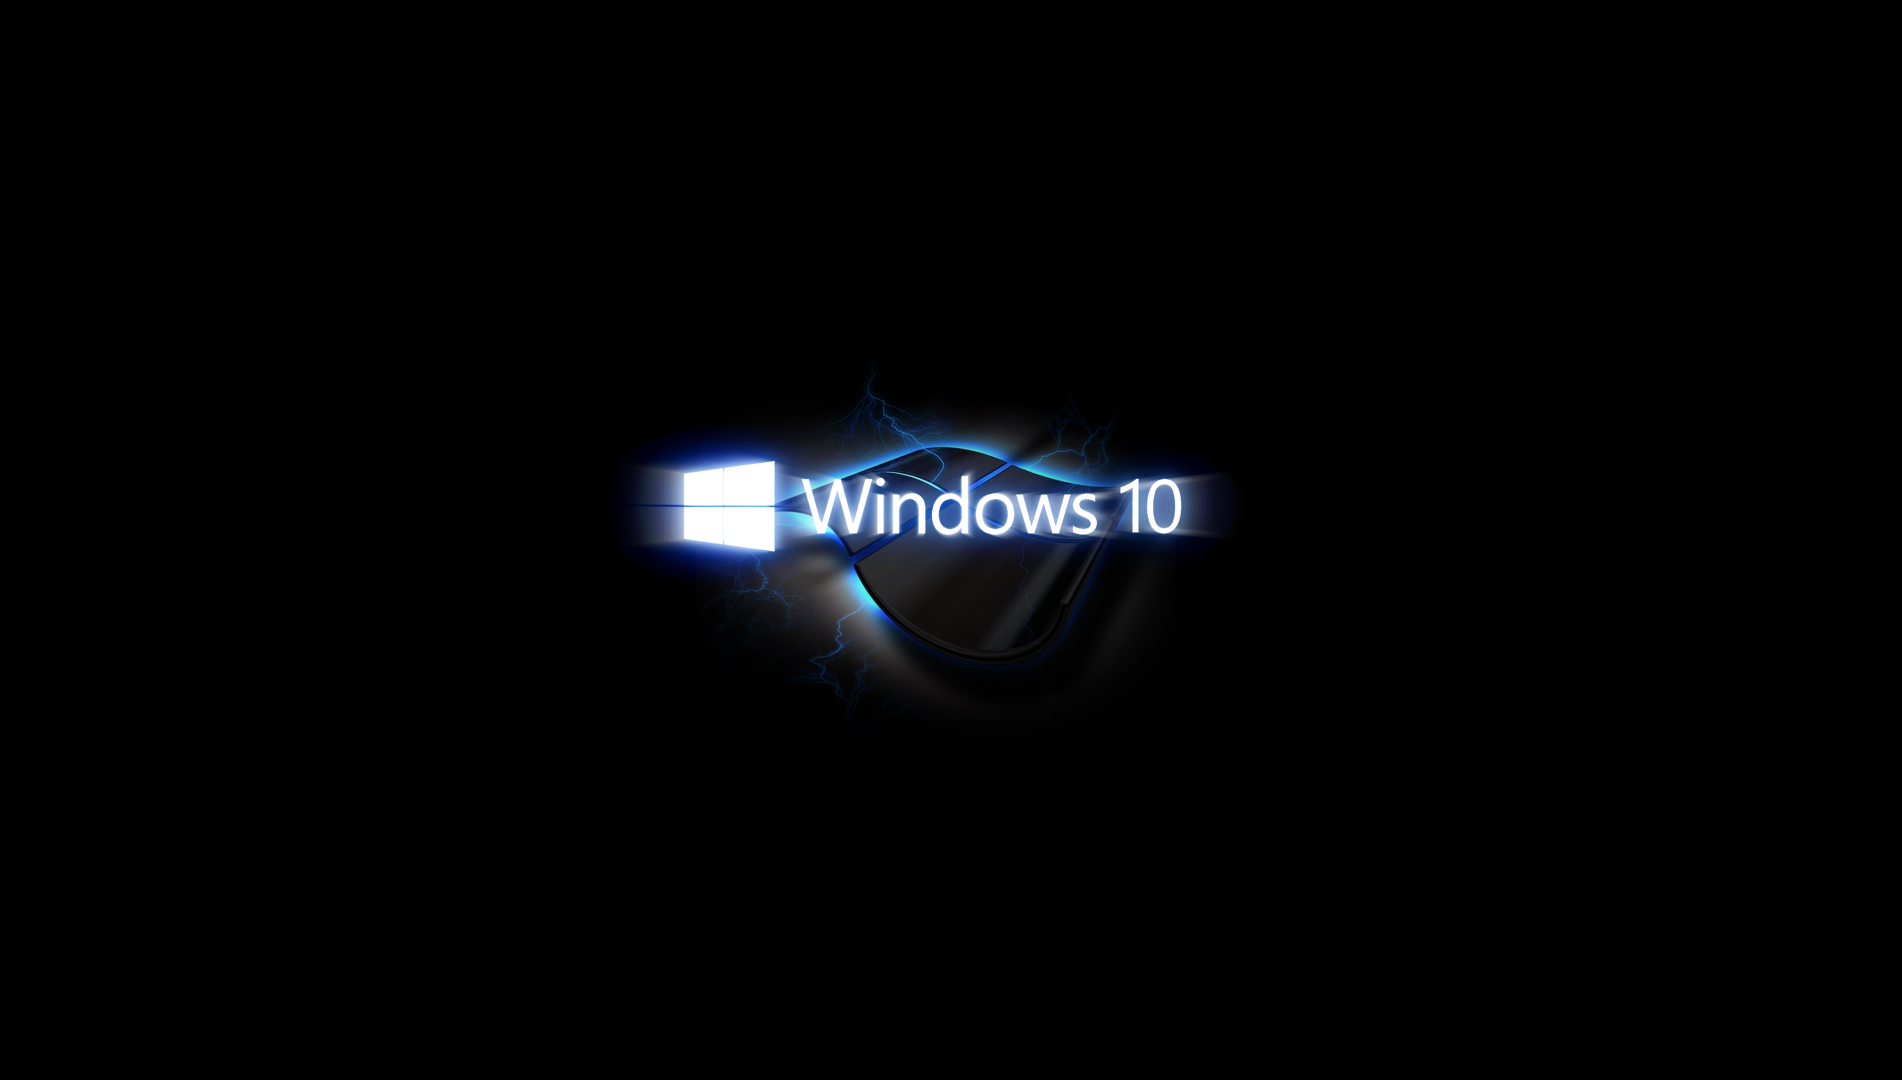 Black Windows 10 Wallpaper Windows10 HD Wallpapers